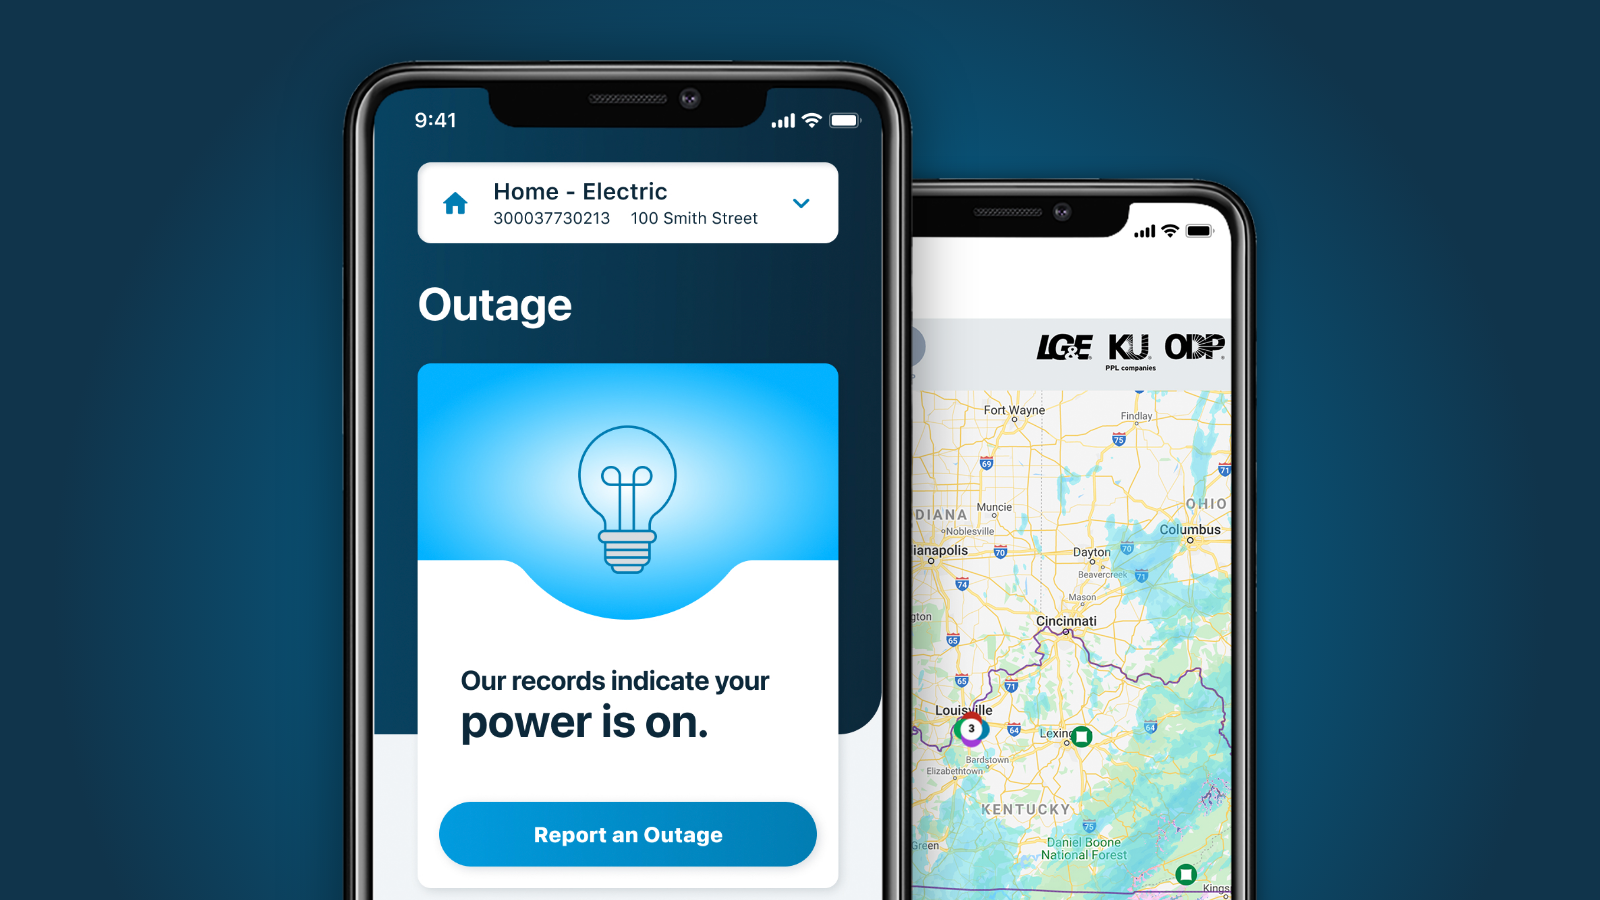 LG&E and KU mobile app outage screens